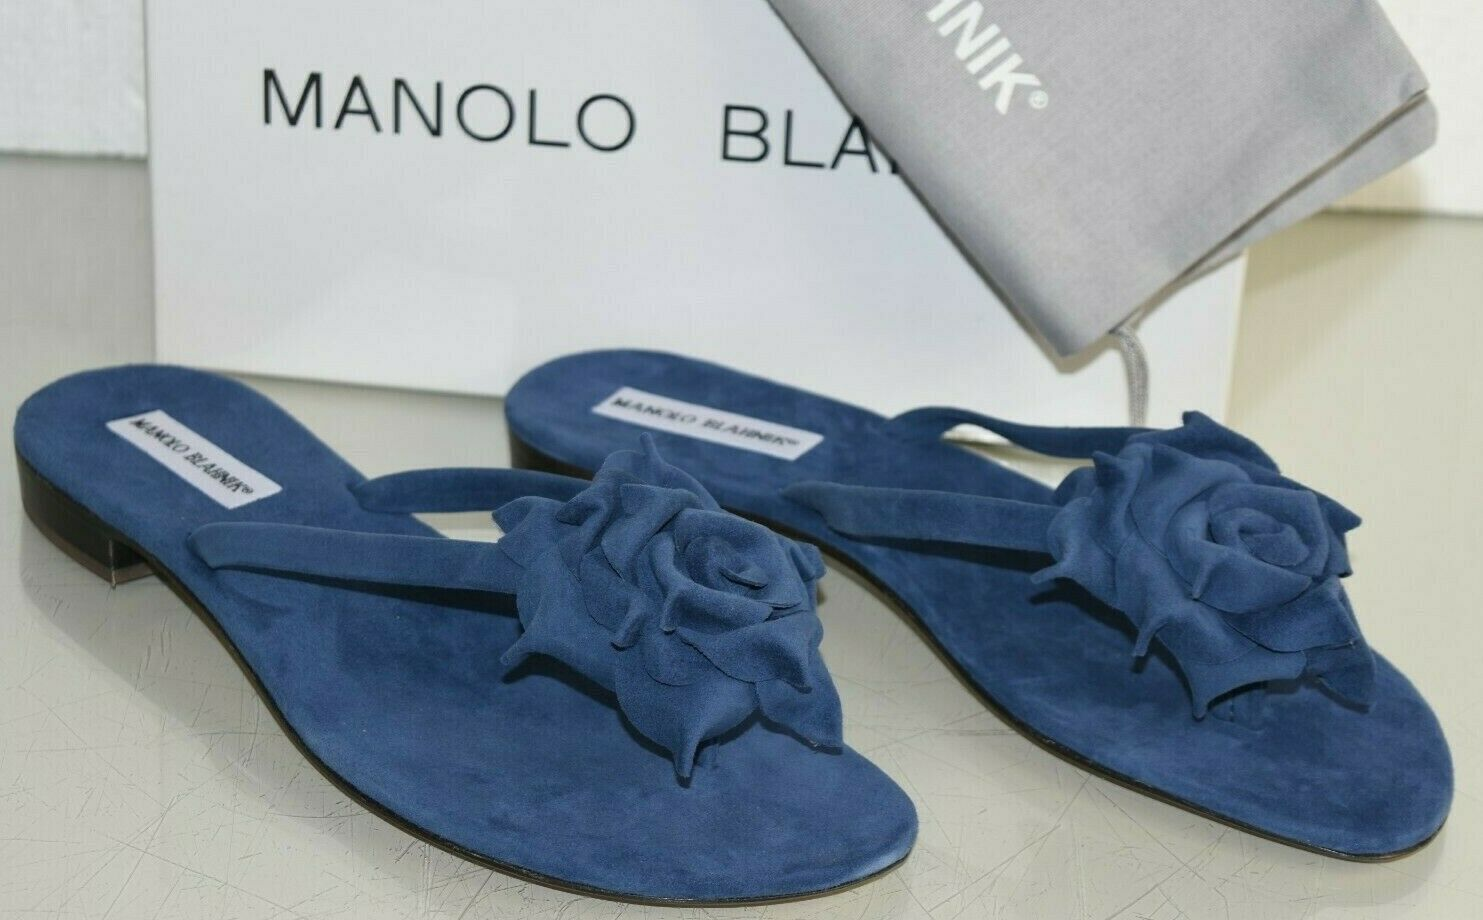 735 New Manolo Blahnik Patricia Thong Slides Flat Sandals bluee Suede shoes 41